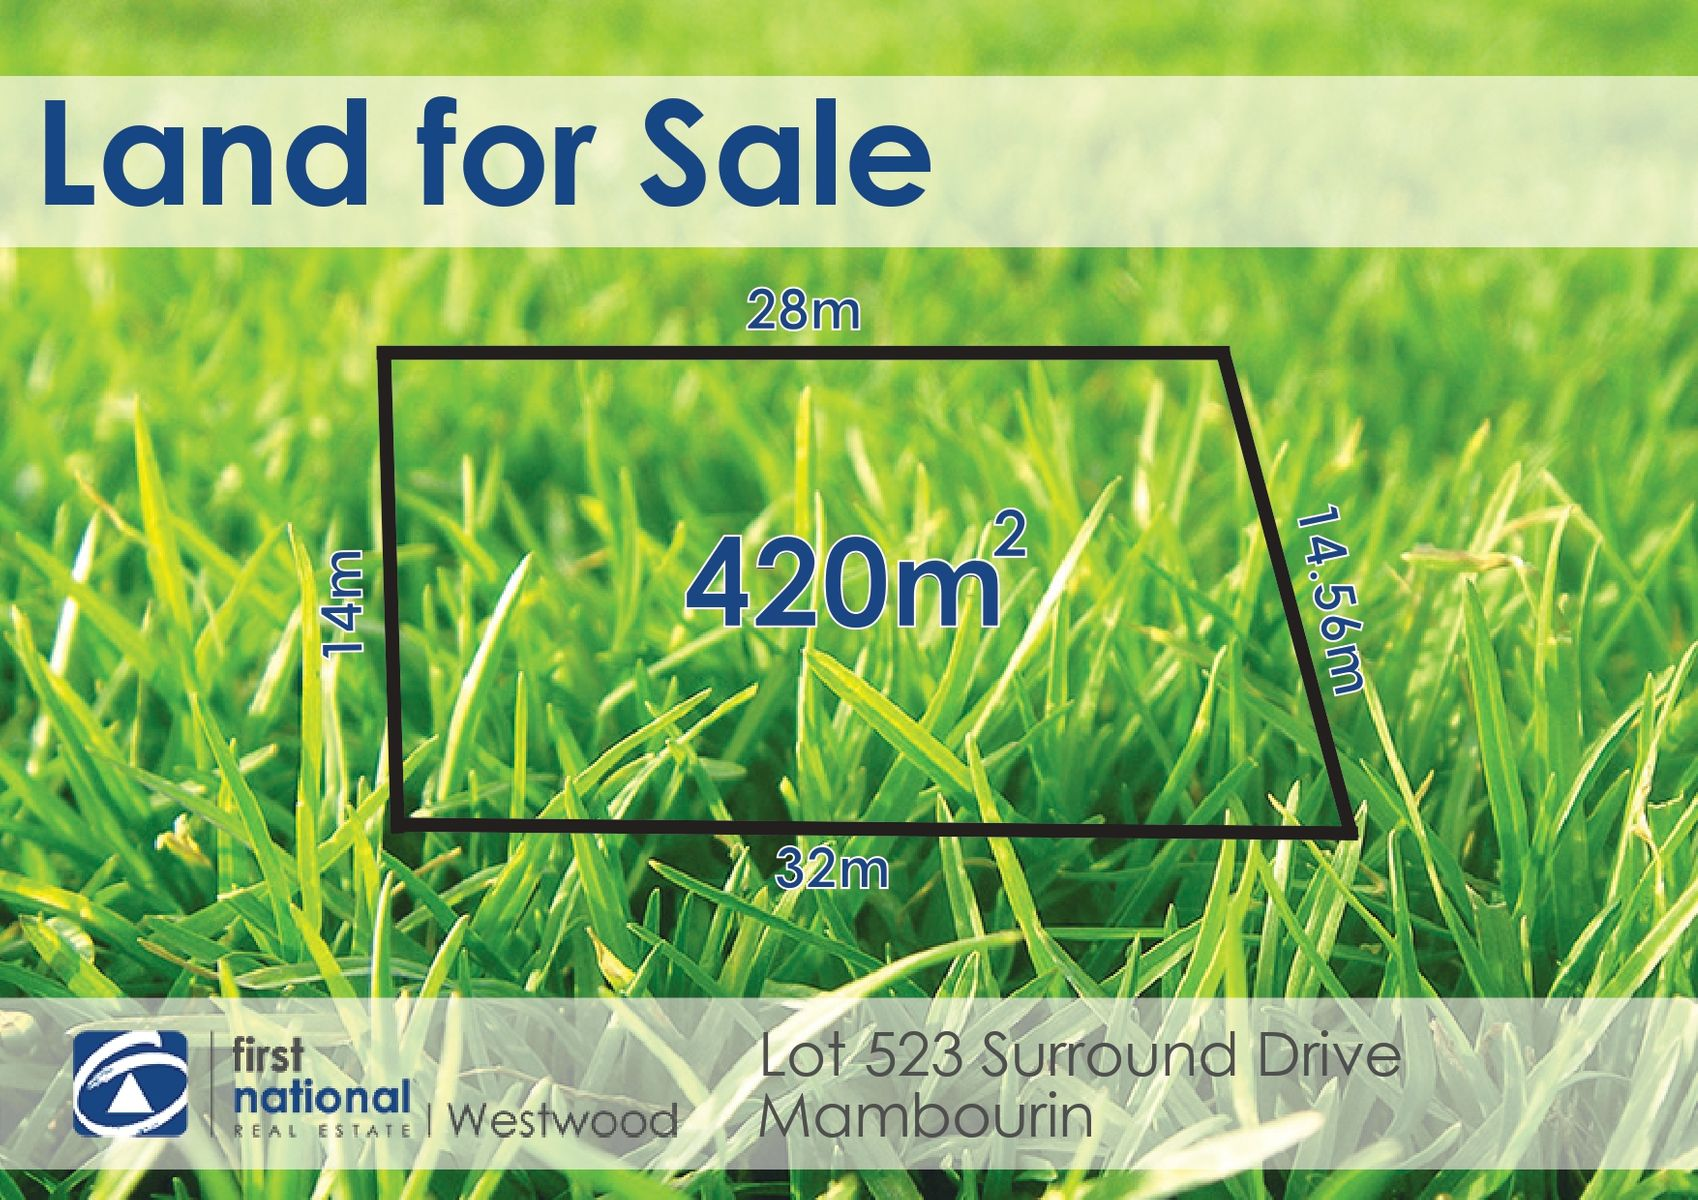 Lot 523 Surround Drive, Mambourin, VIC 3024